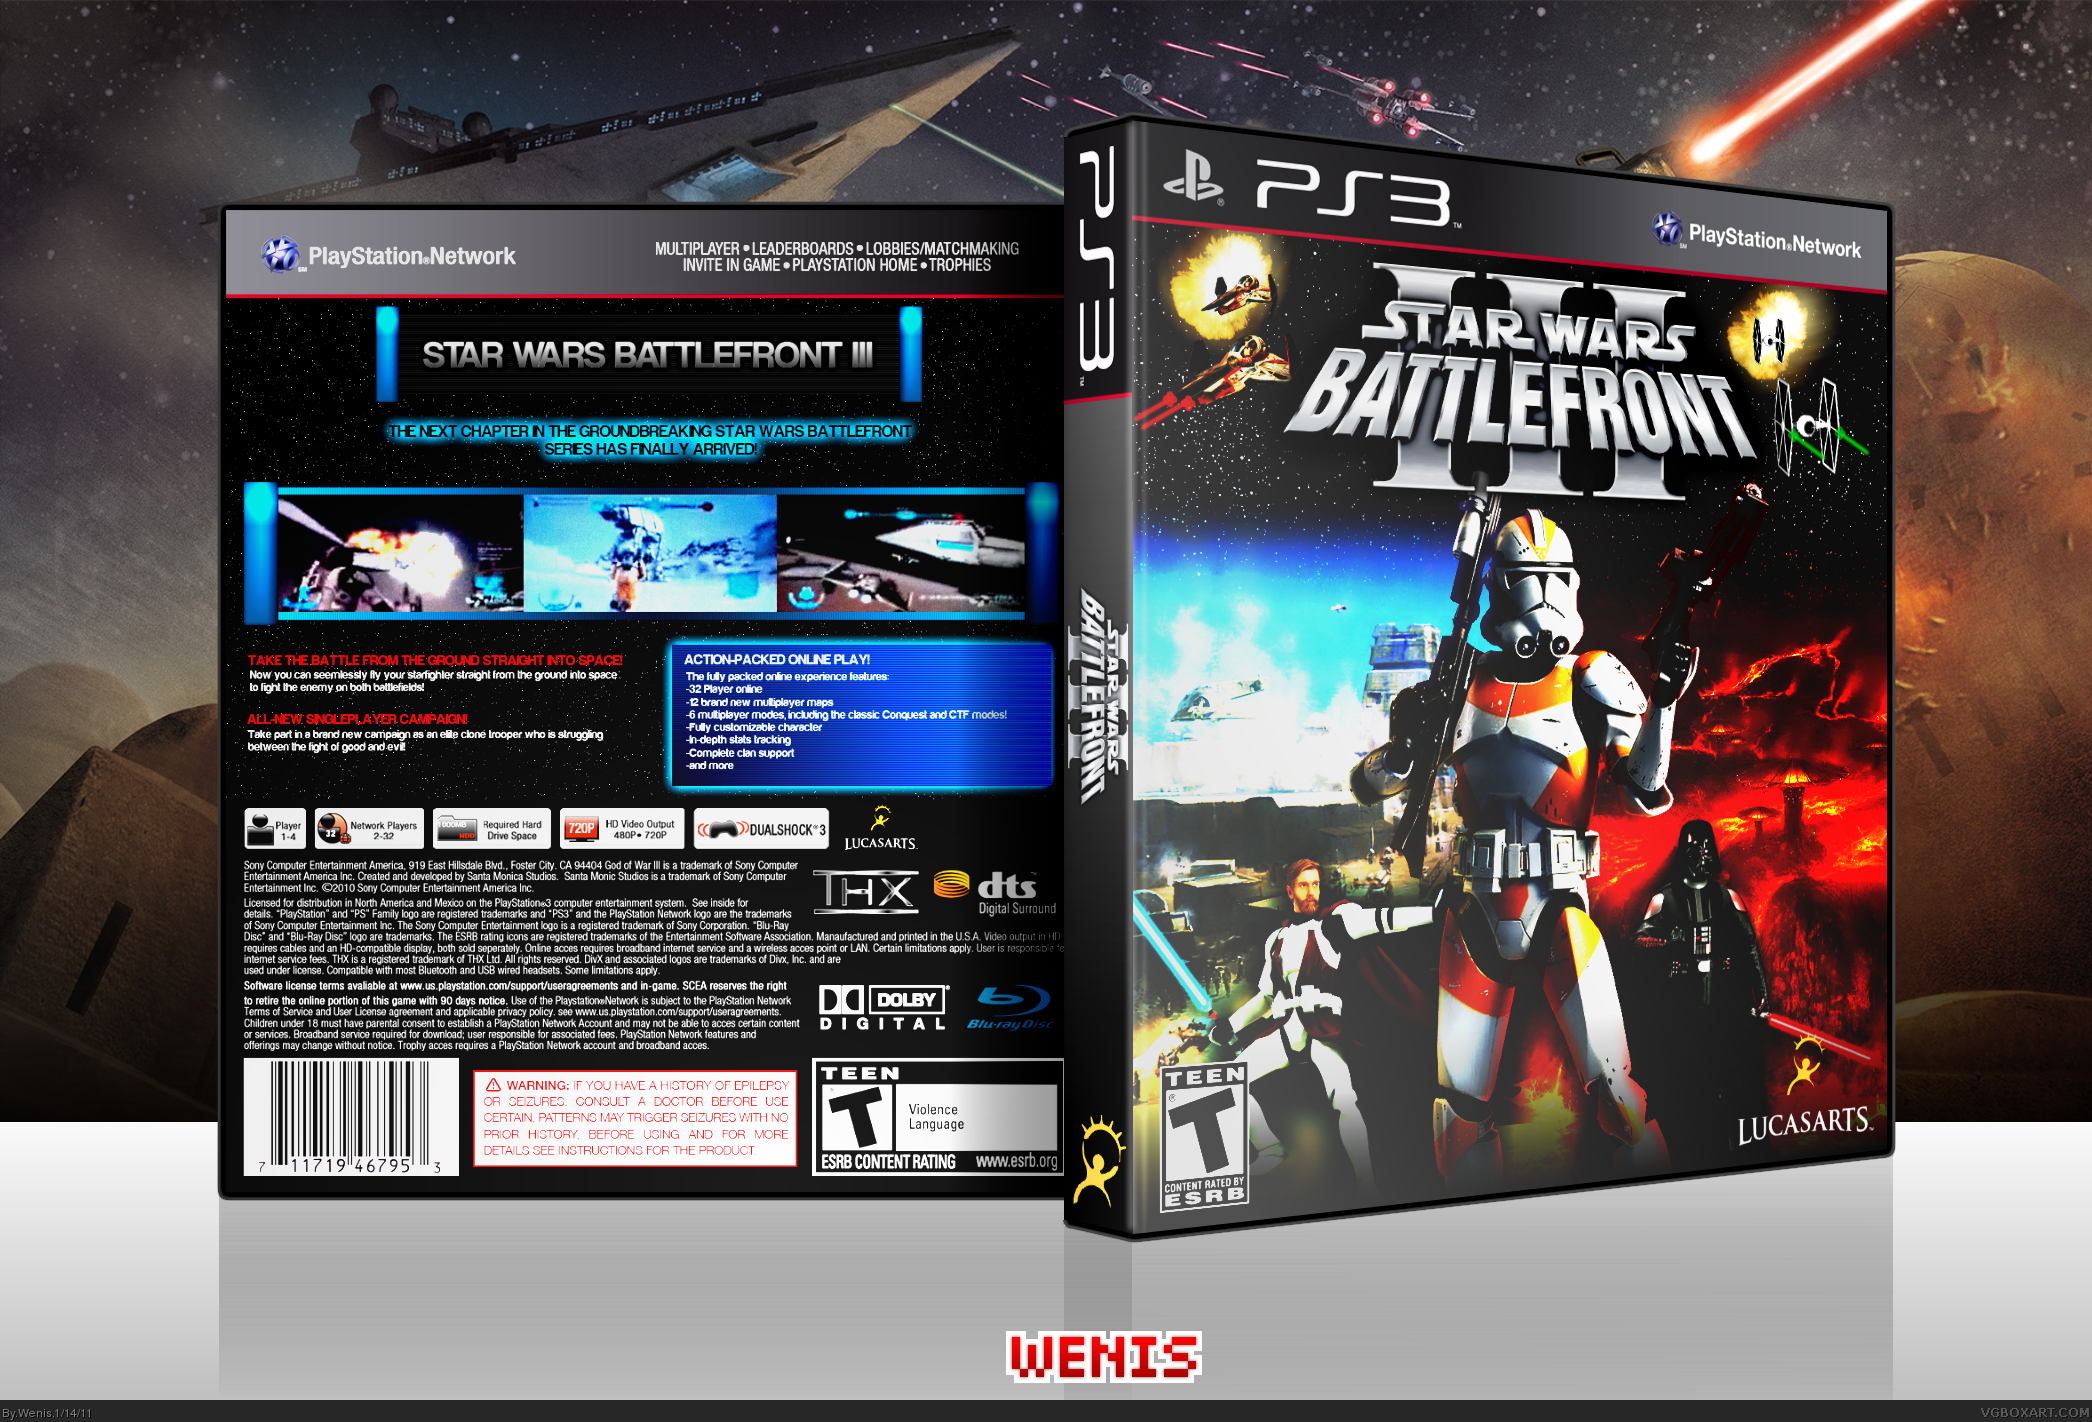 Star Wars: Battlefront III box cover